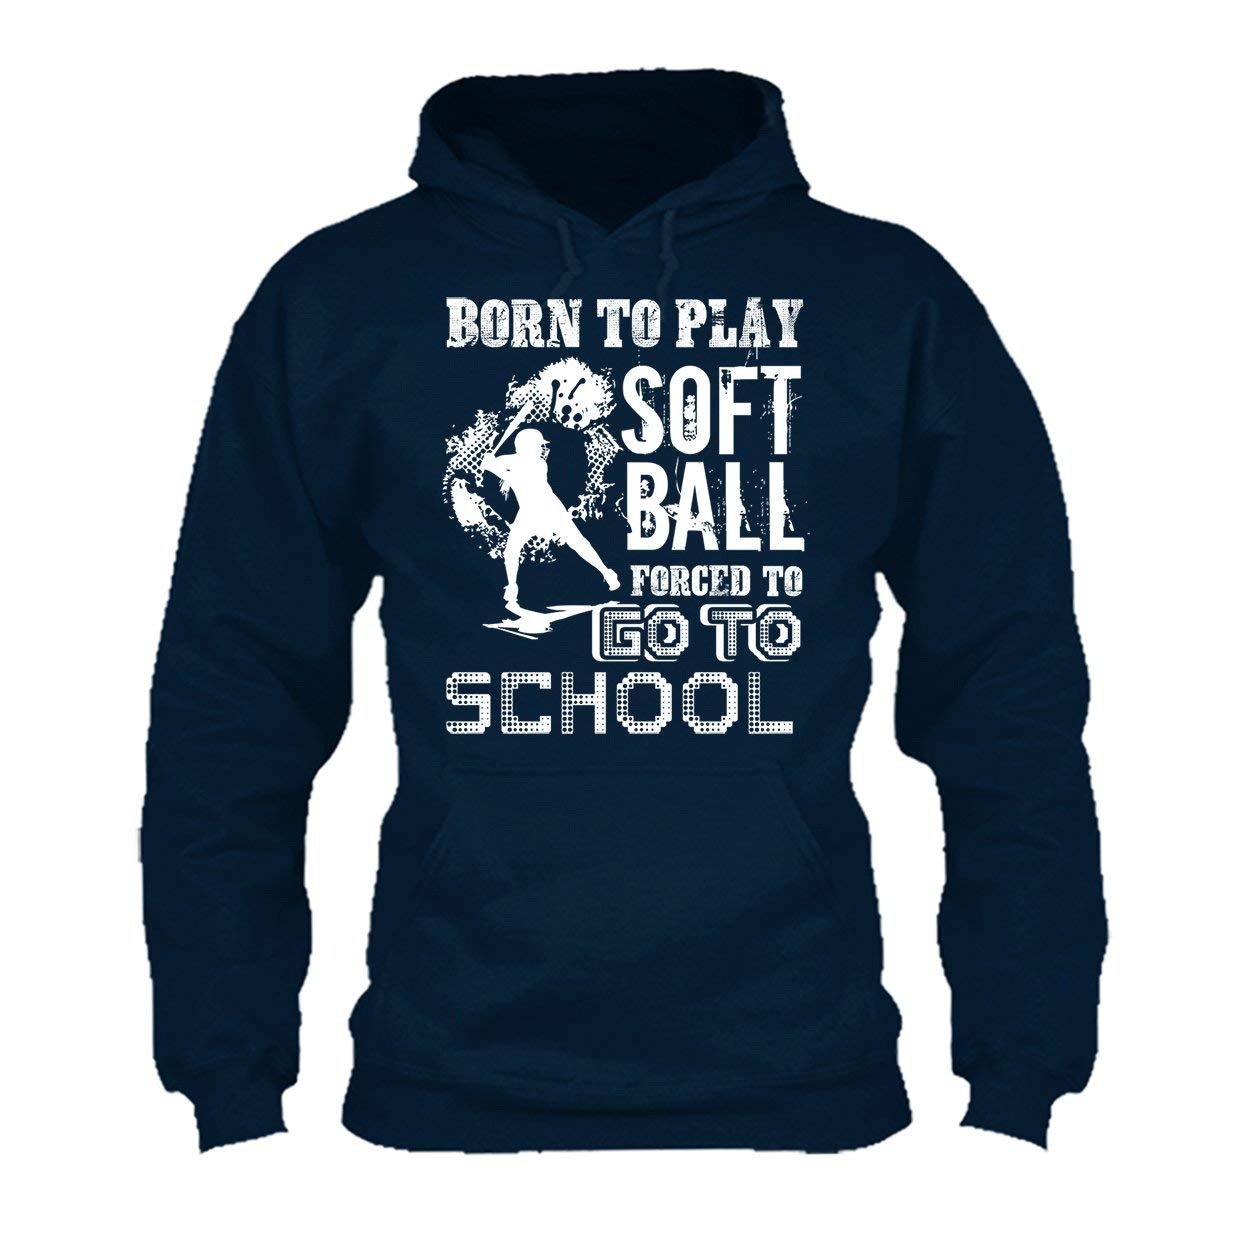 Born to Play Softball Tee Shirt Long Sleeve Shirt